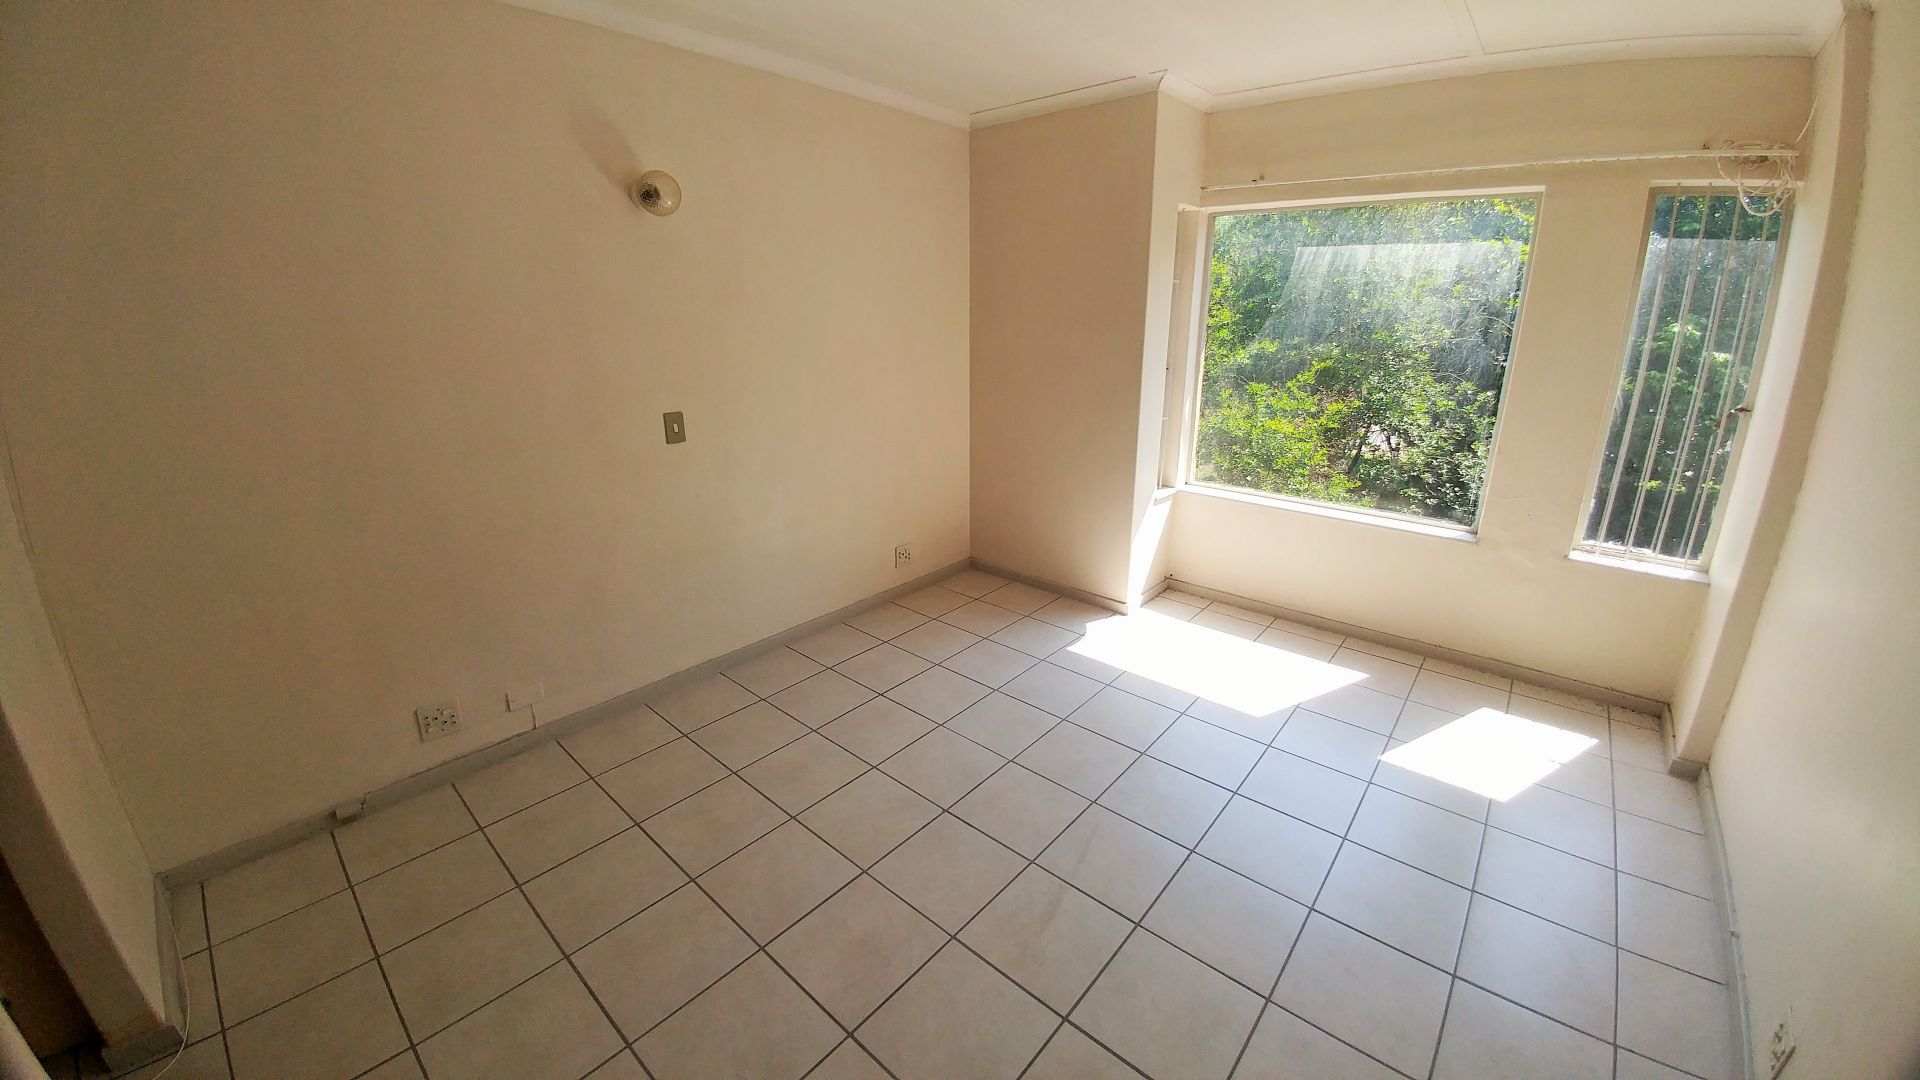 Potchefstroom Central property for sale. Ref No: 13547446. Picture no 18